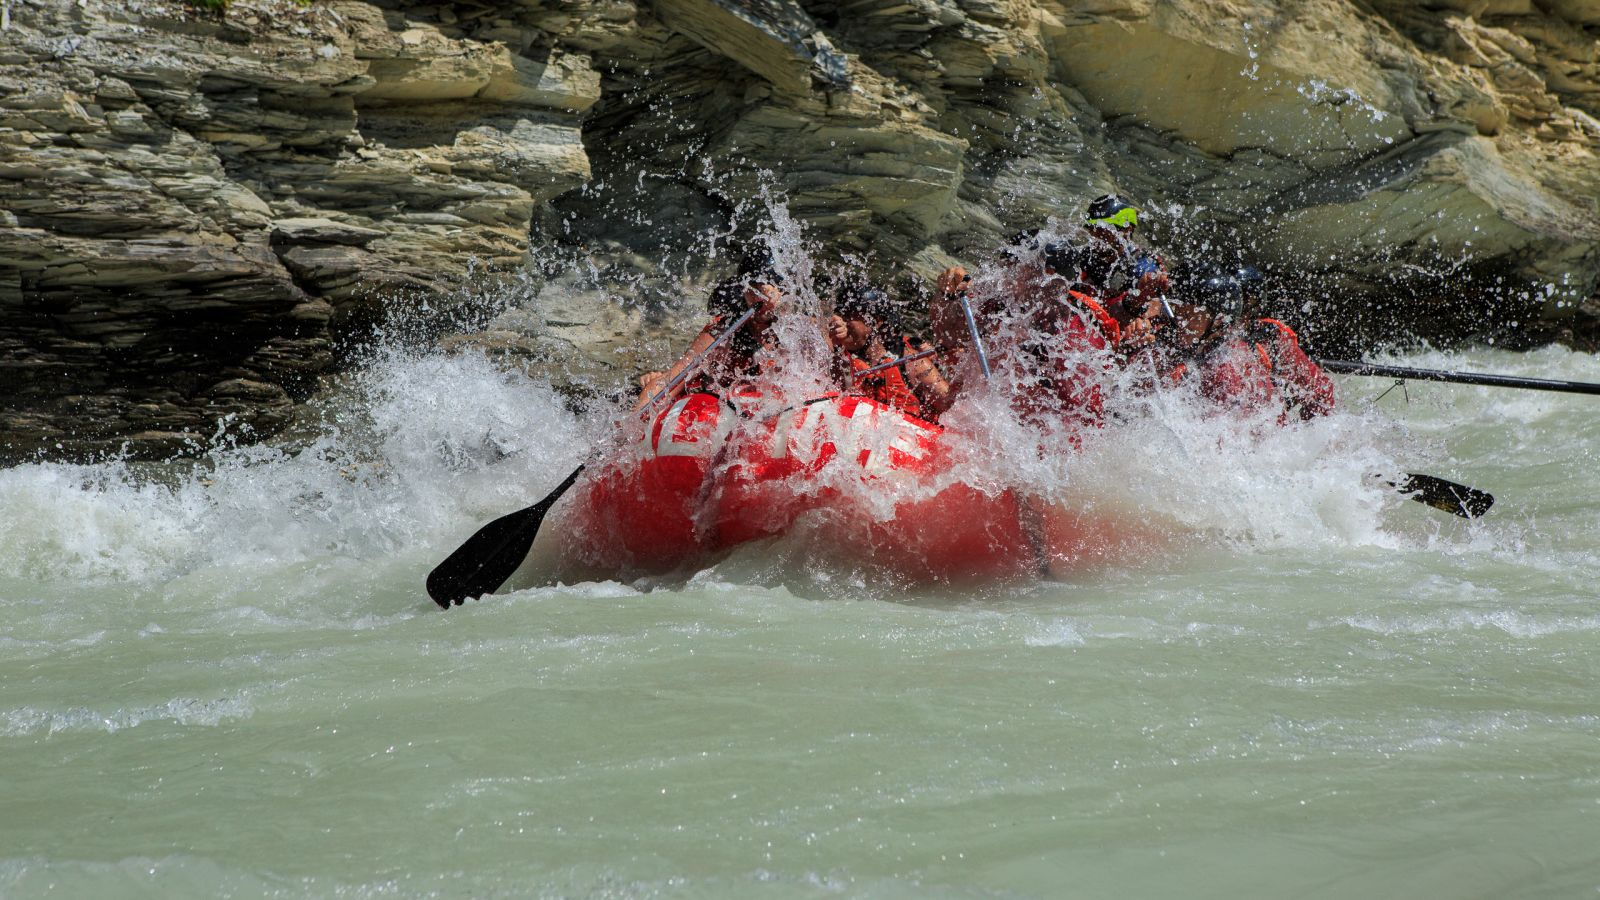 Join Alpine Rafting for a rafting adventure down the Kicking Horse River.